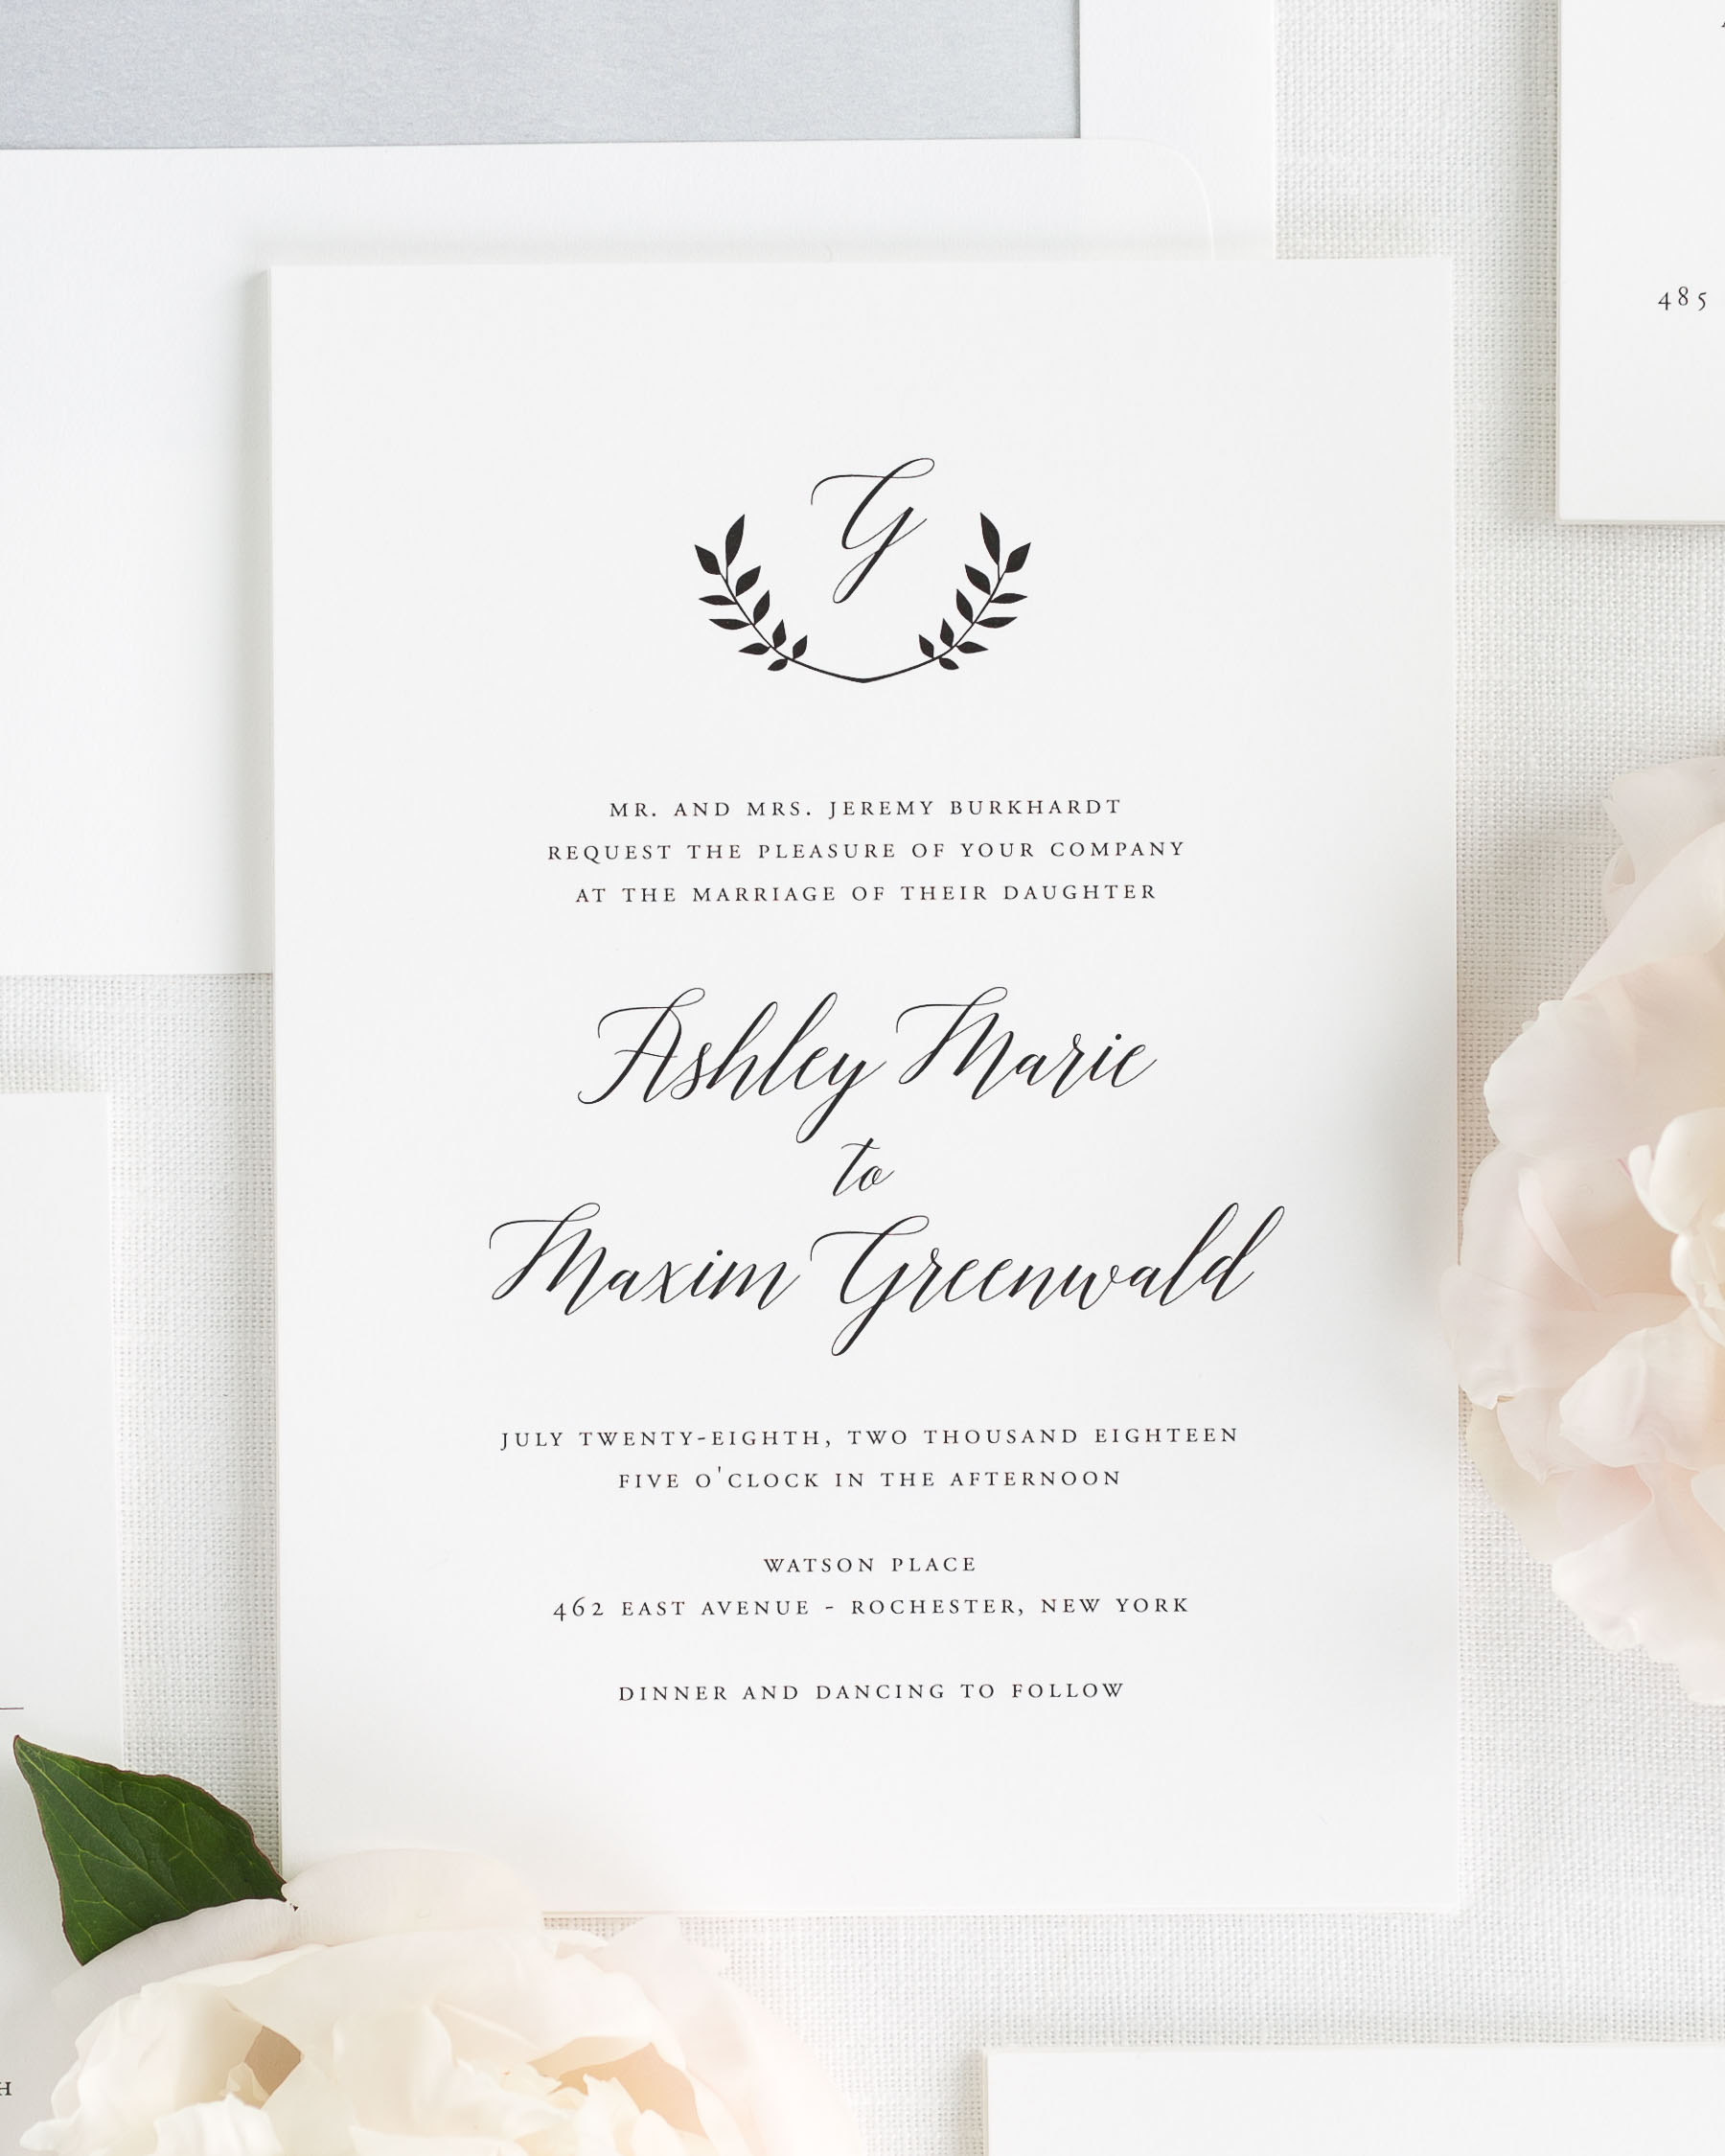 Wreath Monogram Wedding Invitations Wedding Invitations by Shine